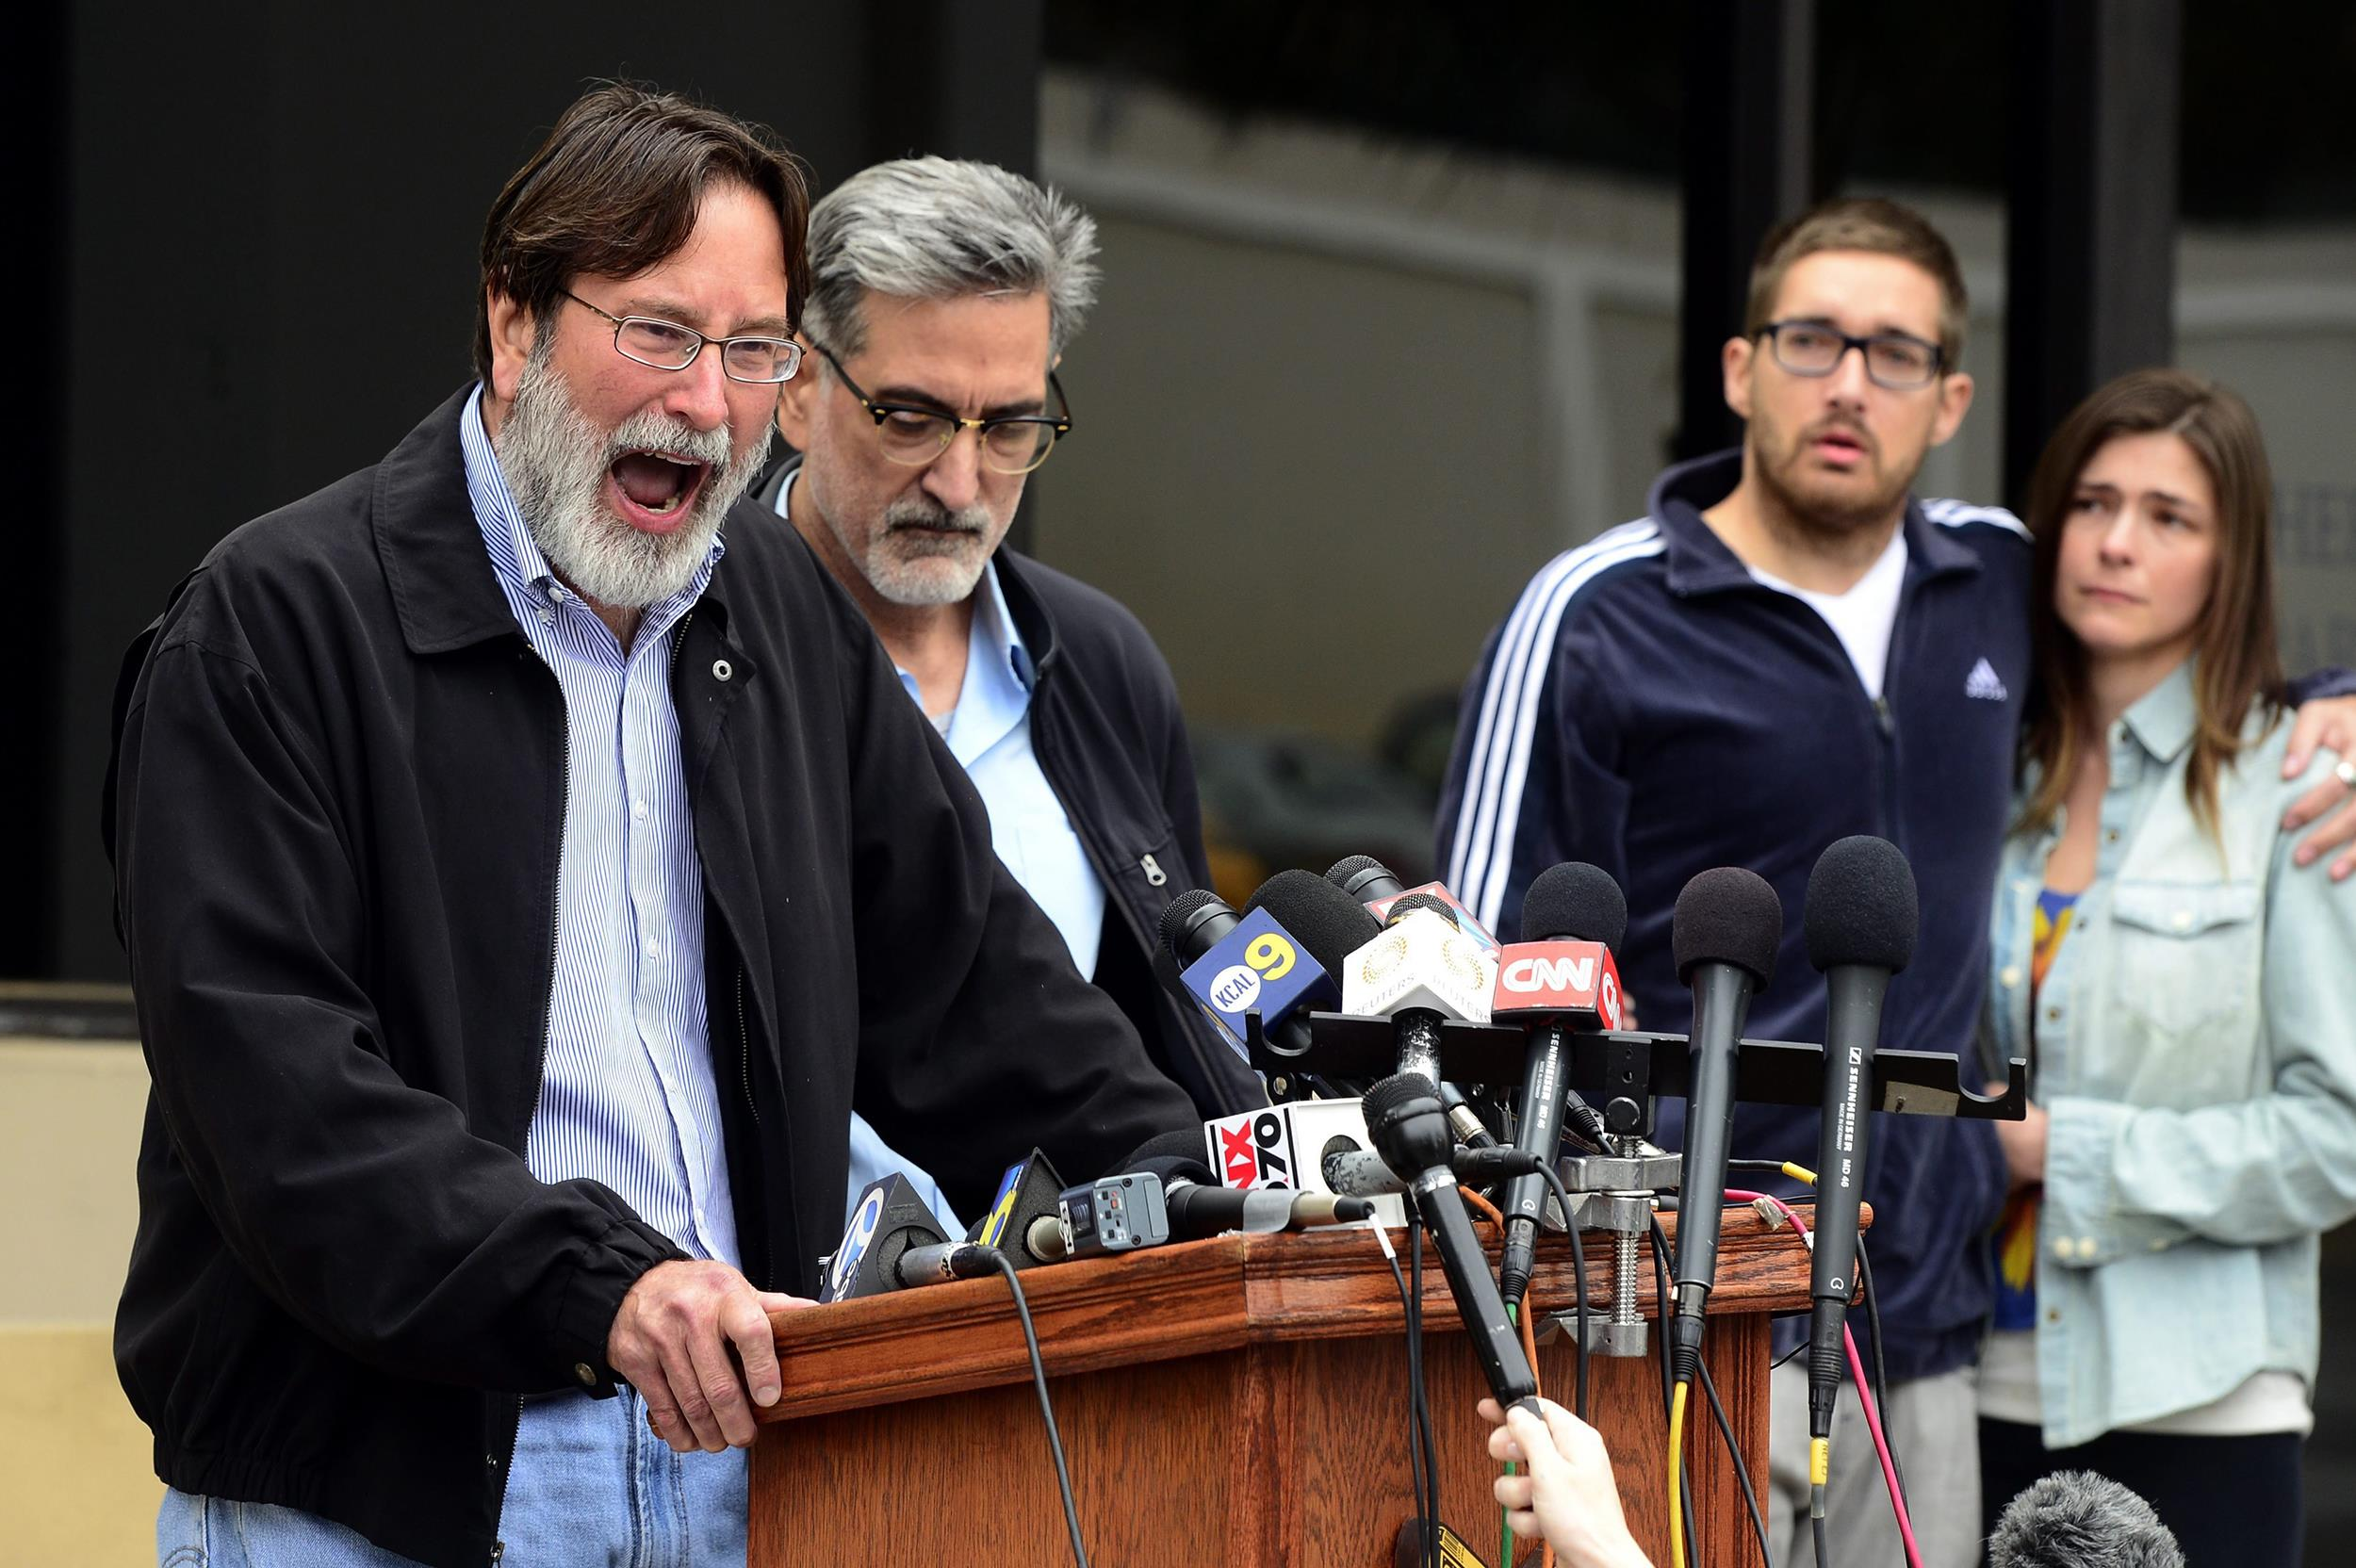 Image: Richard Martinez, the father of mass shooting victim Christopher Martinez, expresses his anger and sorrow as he speaks to the media